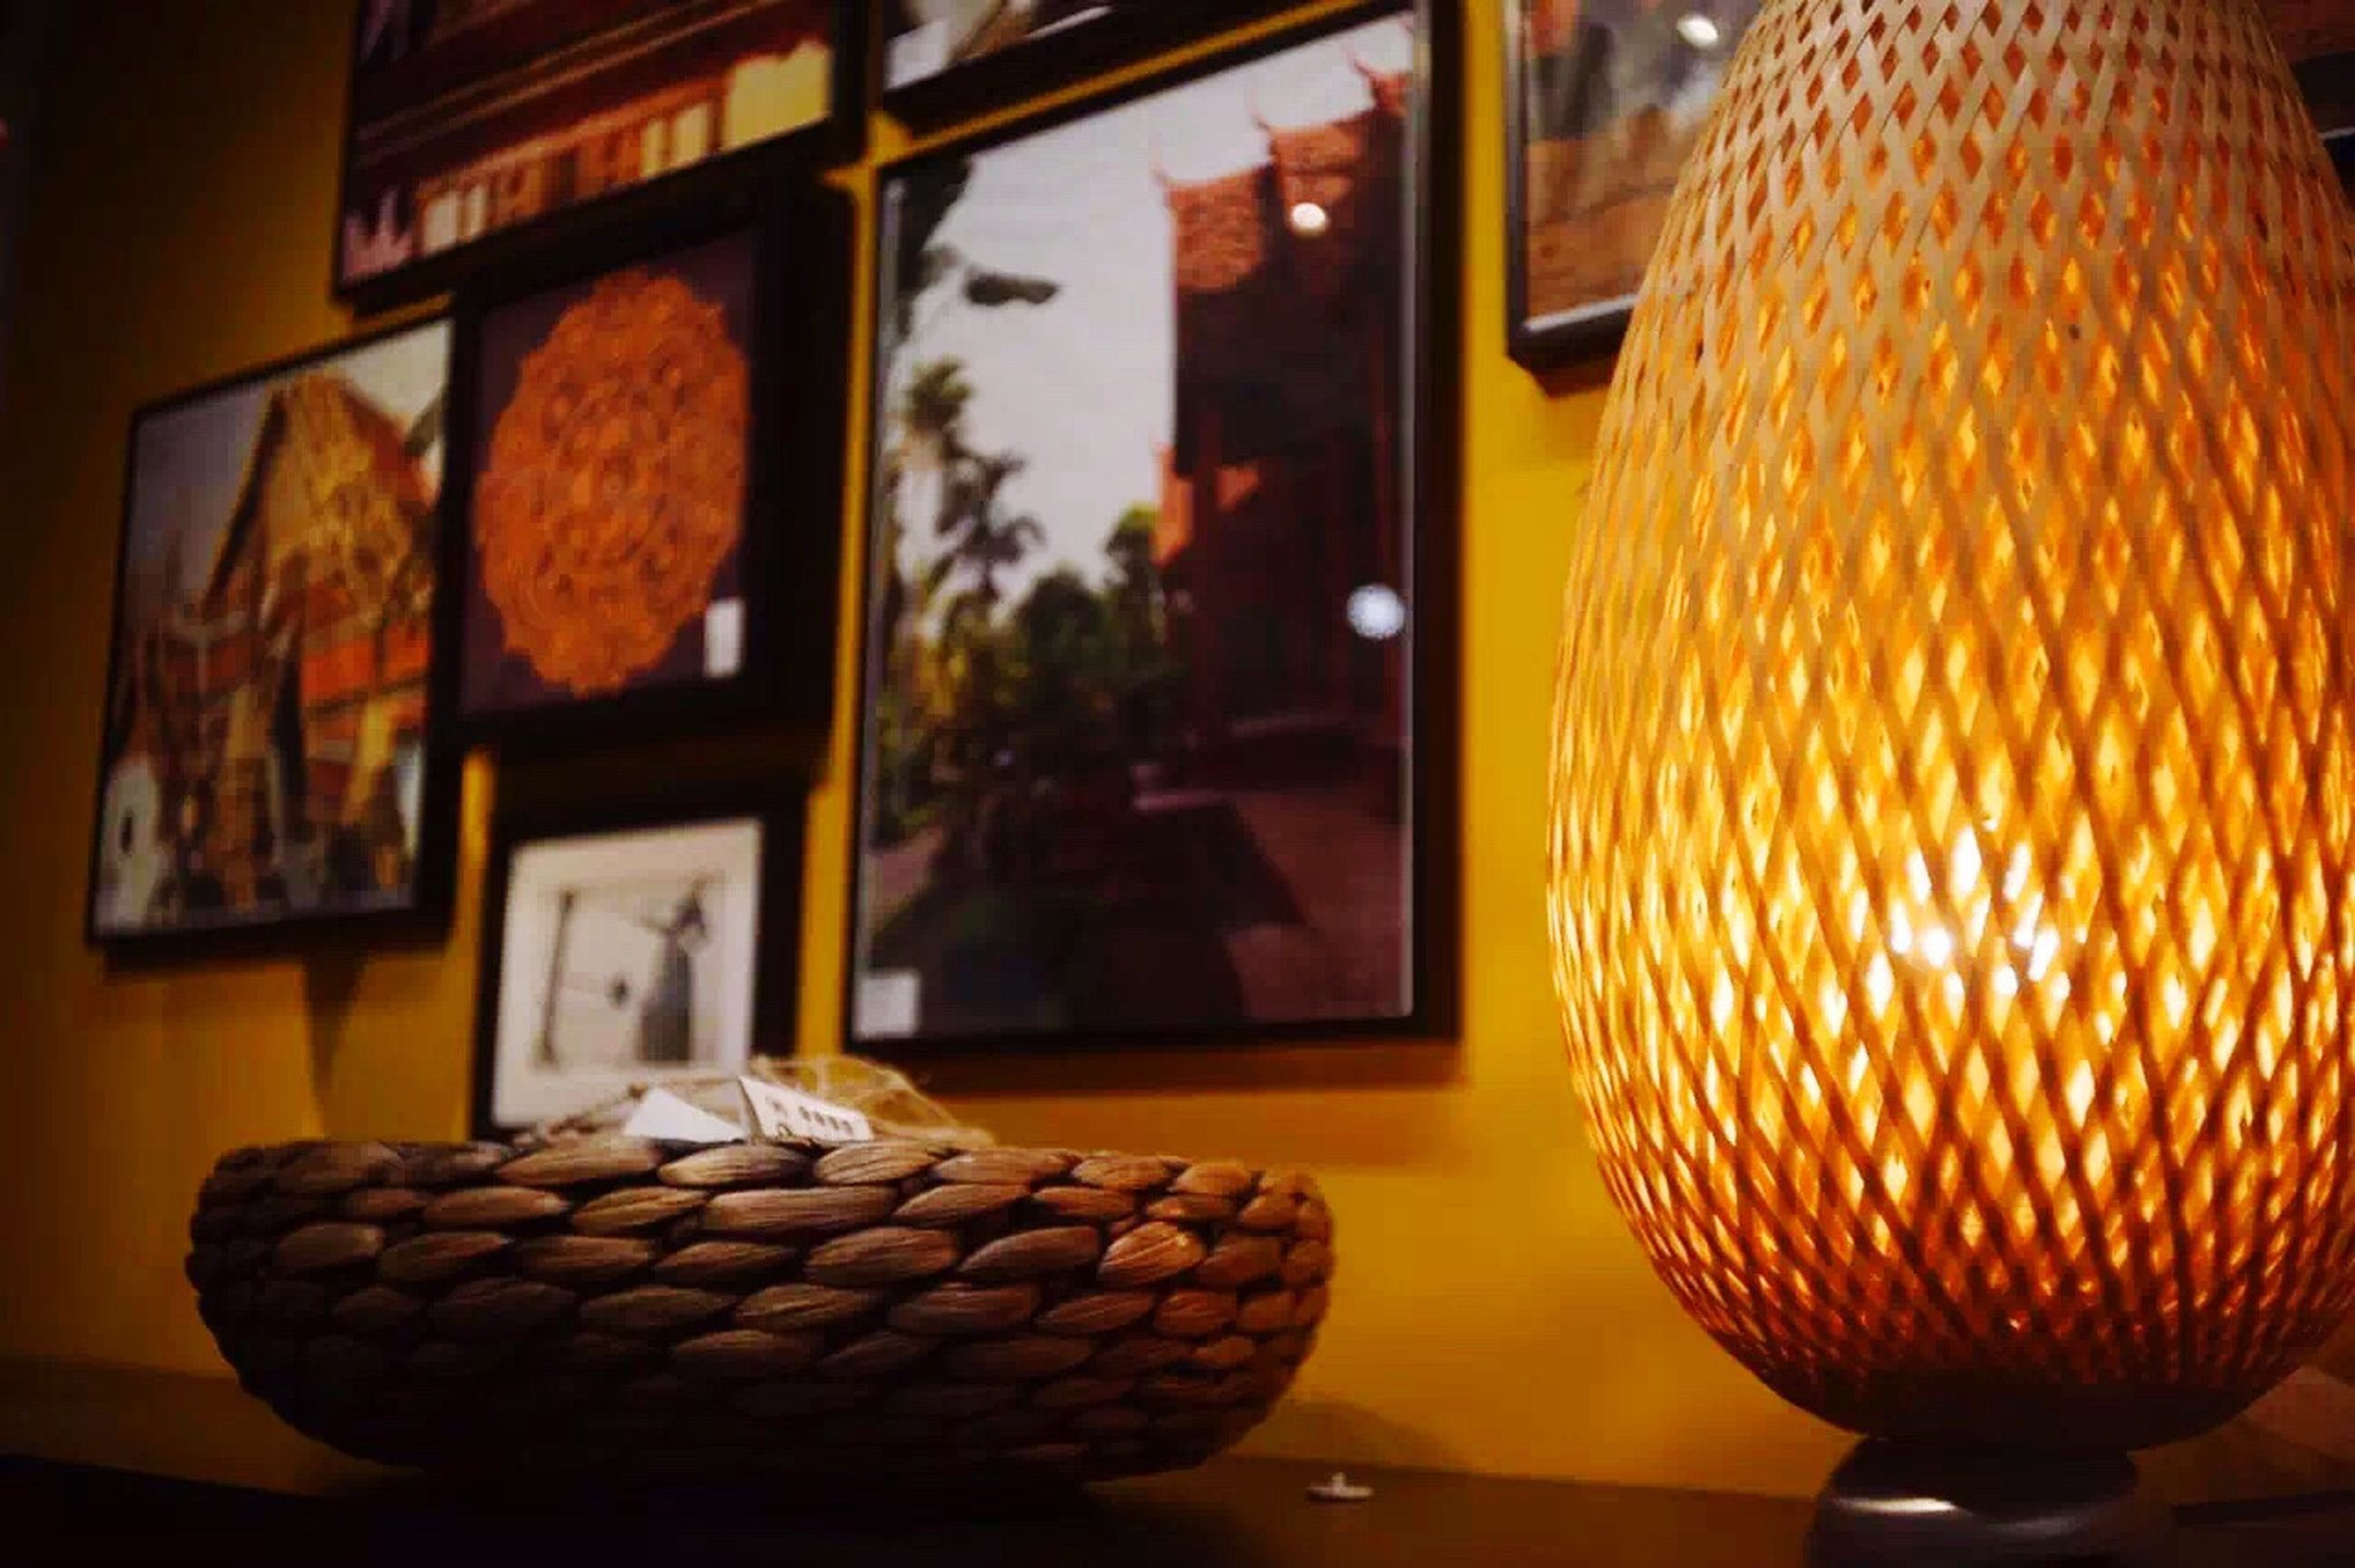 indoors, food and drink, still life, food, table, large group of objects, no people, illuminated, stack, abundance, close-up, window, home interior, orange color, variation, store, fruit, focus on foreground, healthy eating, in a row